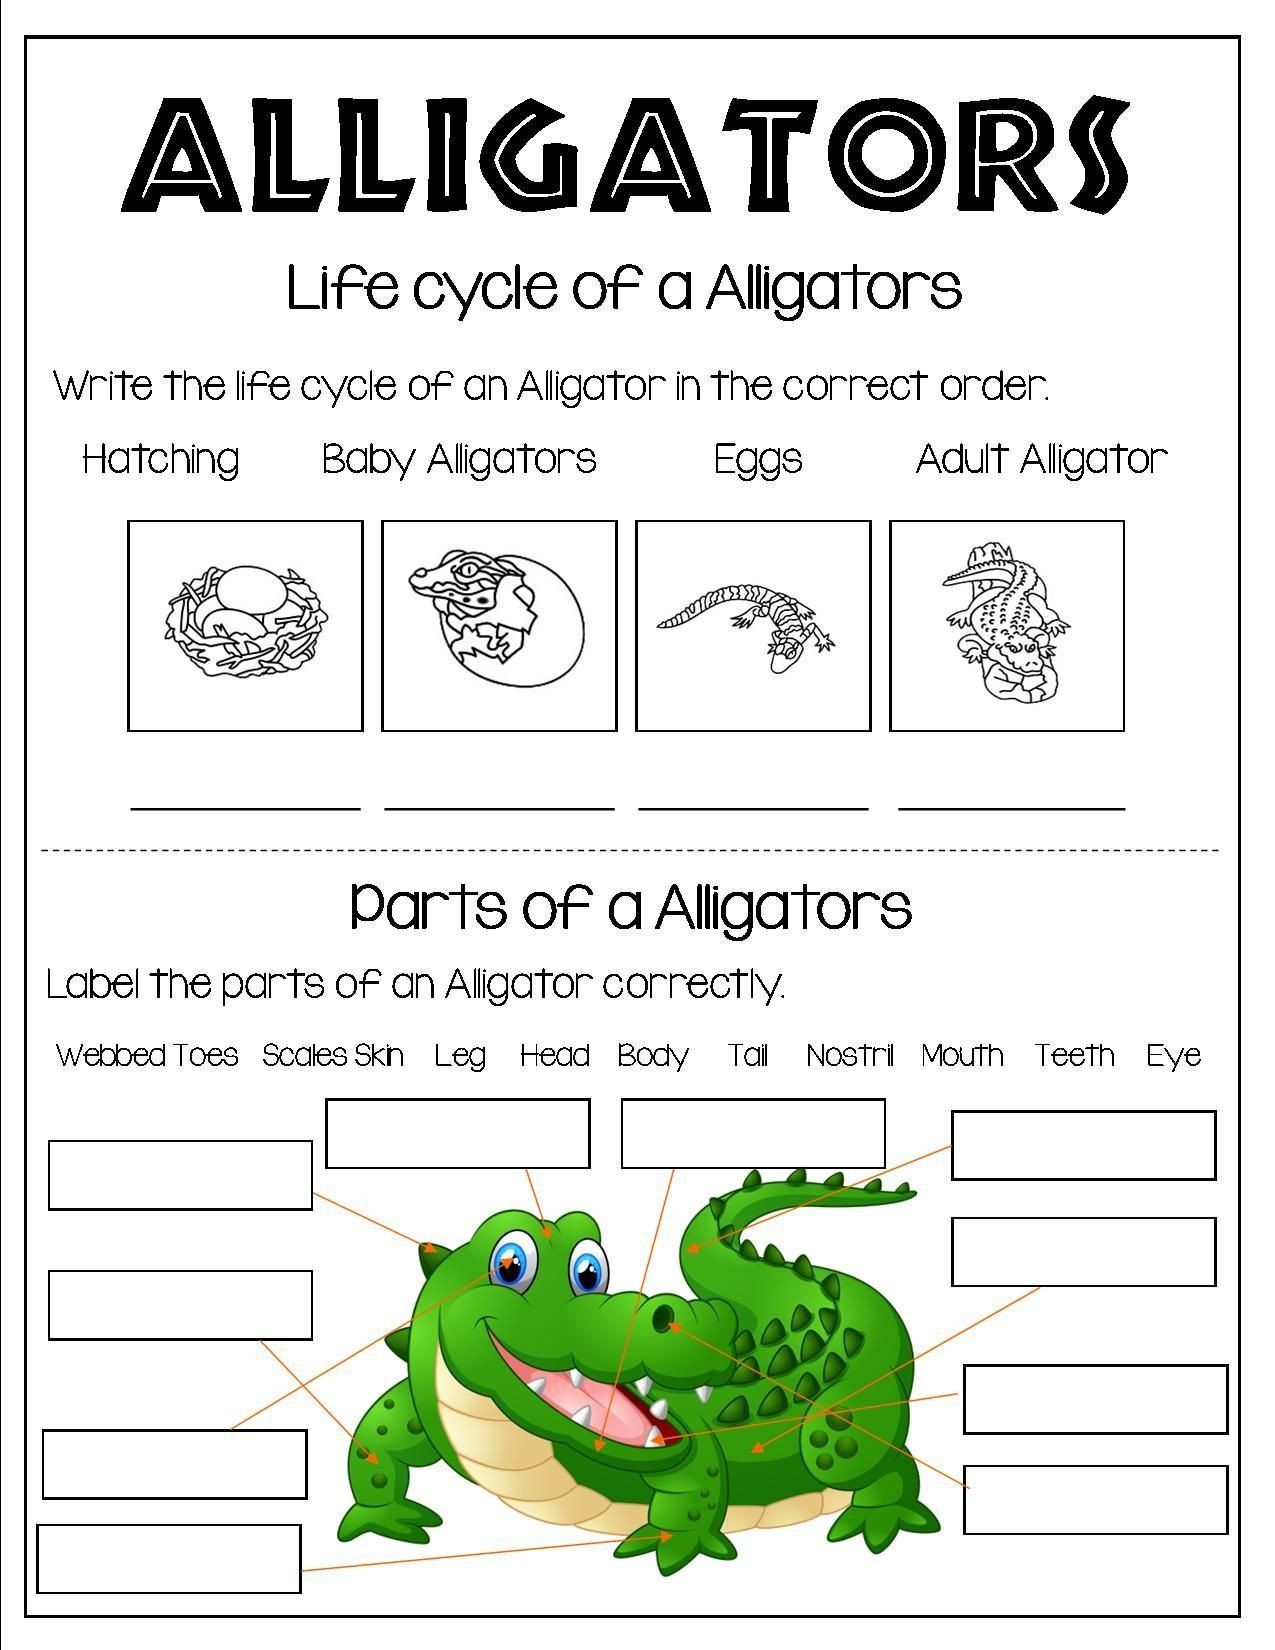 Natural Resources Worksheets 1st Grade Grade 1 and Grade 2 Students Can  Learn About Reptiles All in 2020   Life cycles kindergarten [ 1650 x 1275 Pixel ]